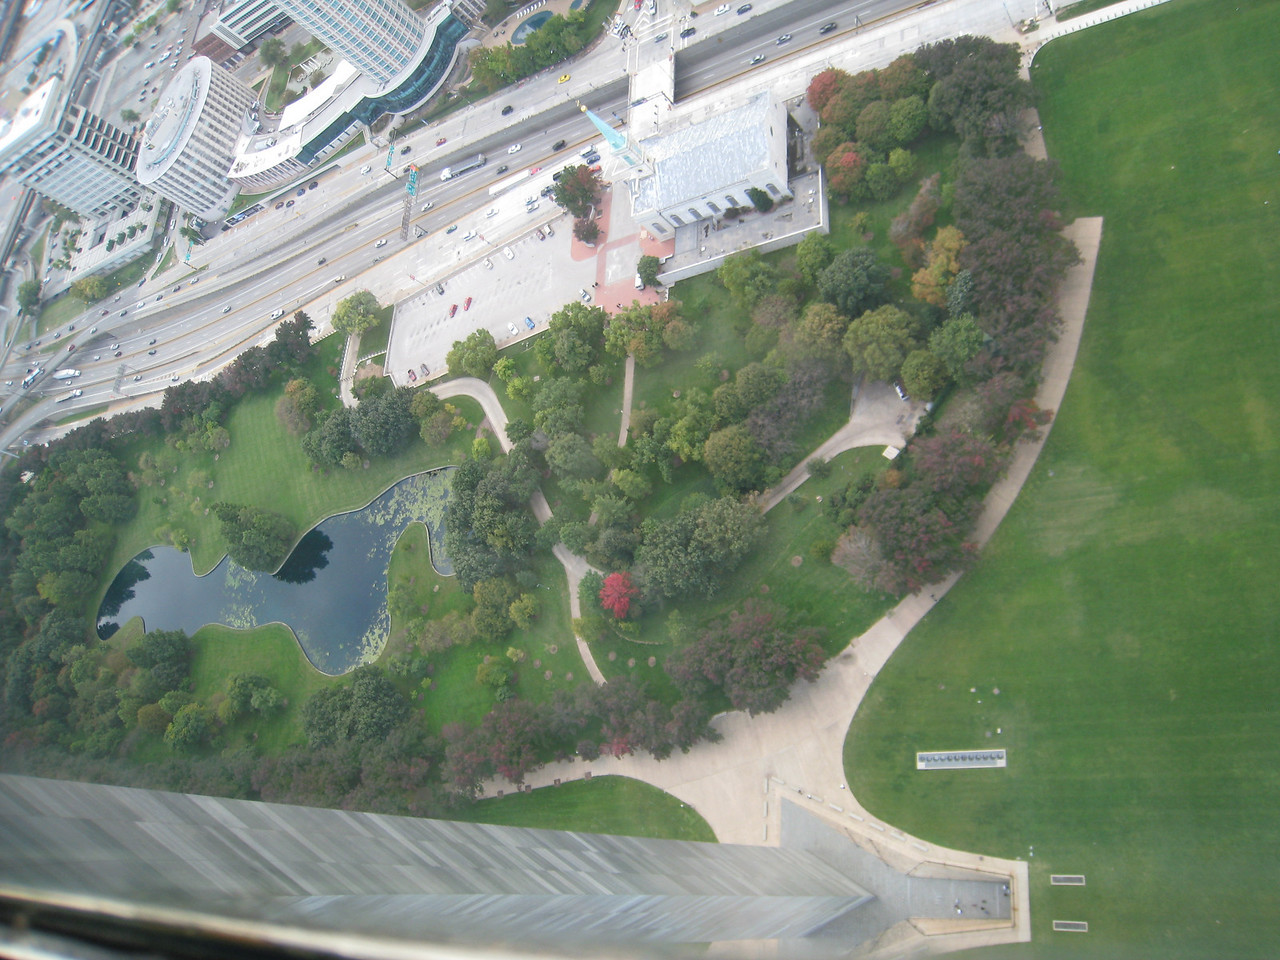 View from the top of the arch, looking west